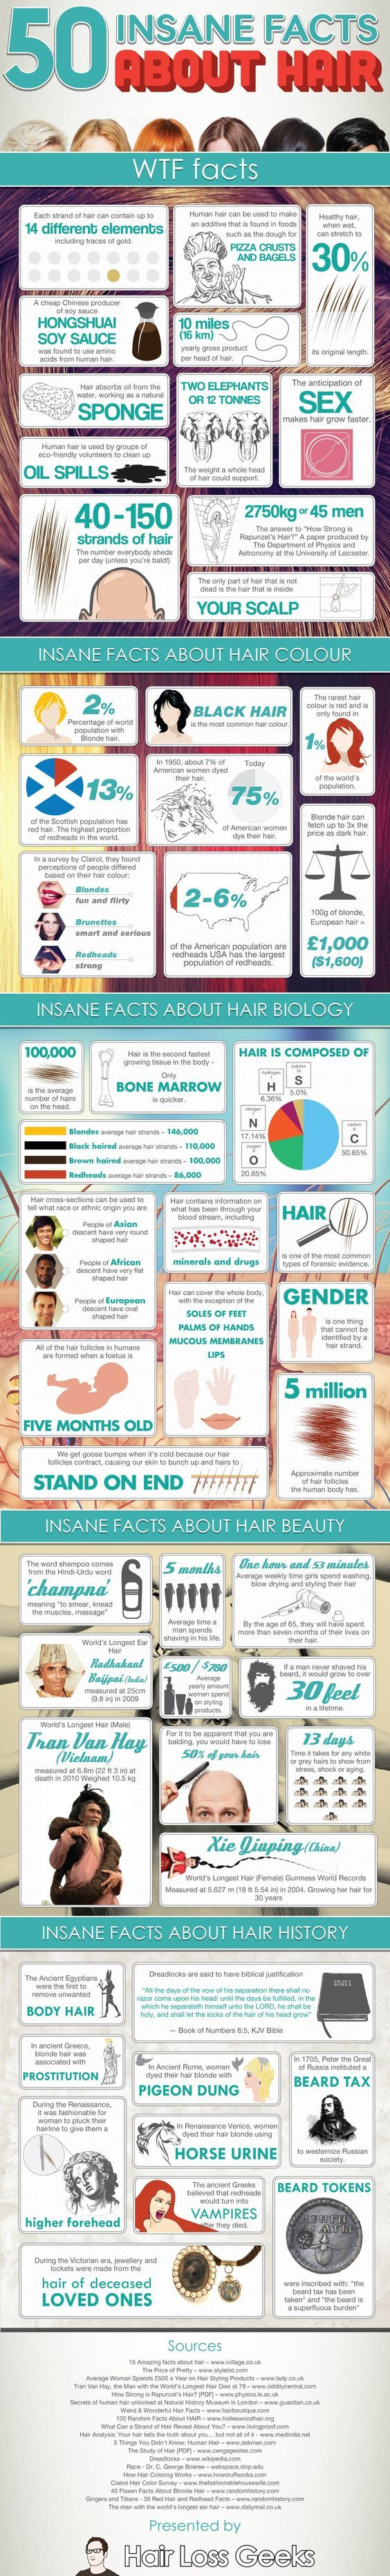 50 Insane Facts About Hair {Infographic} : WomanlyWoman.com